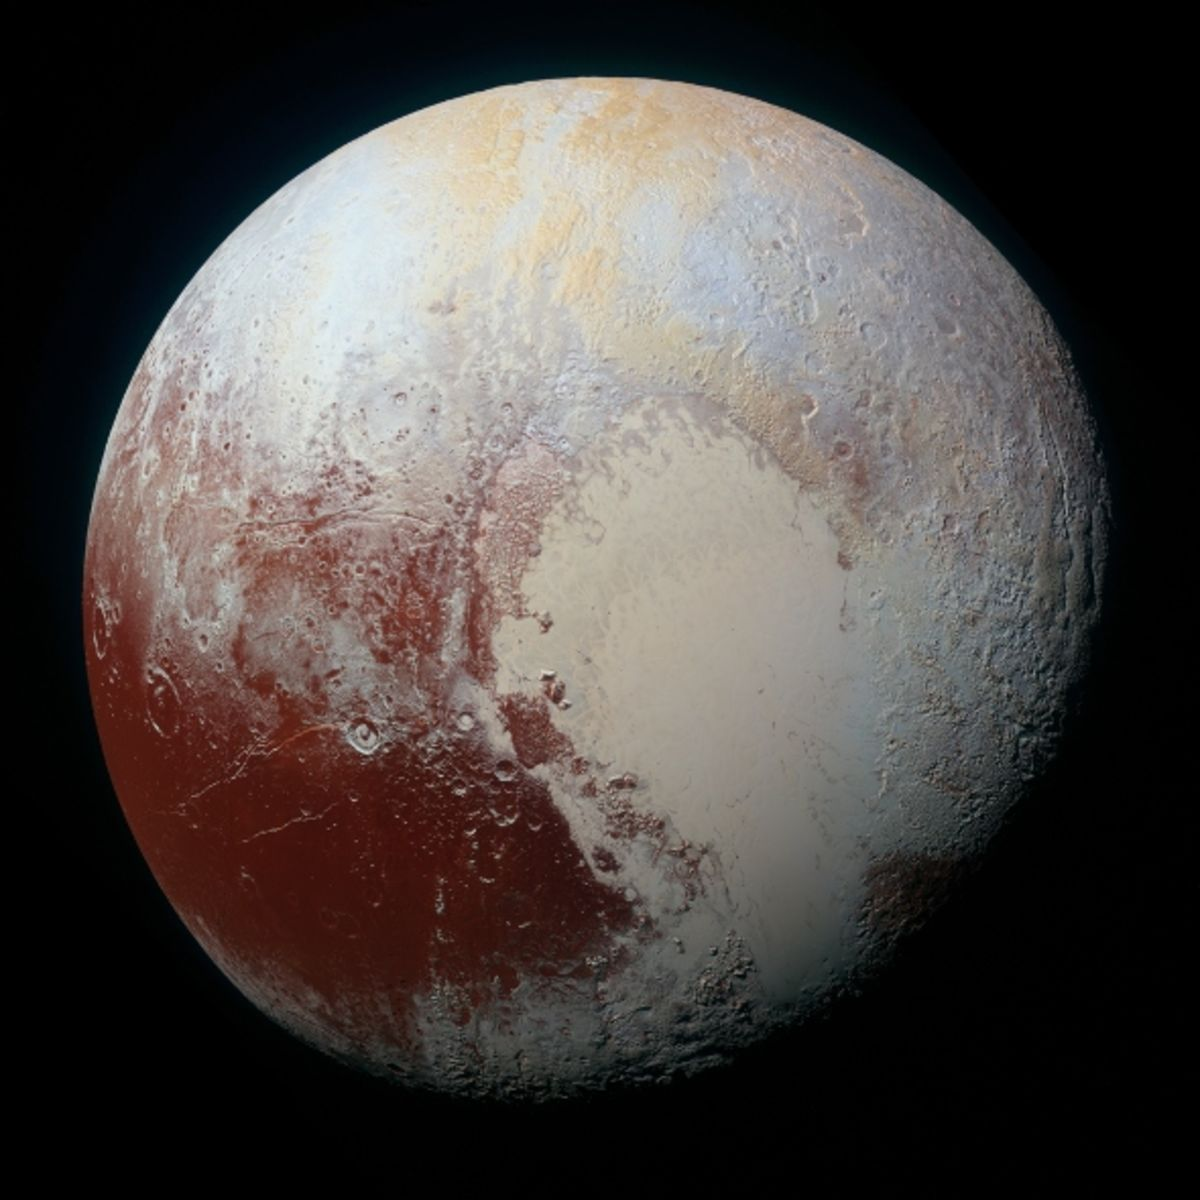 nh_pluto_full_color.jpg